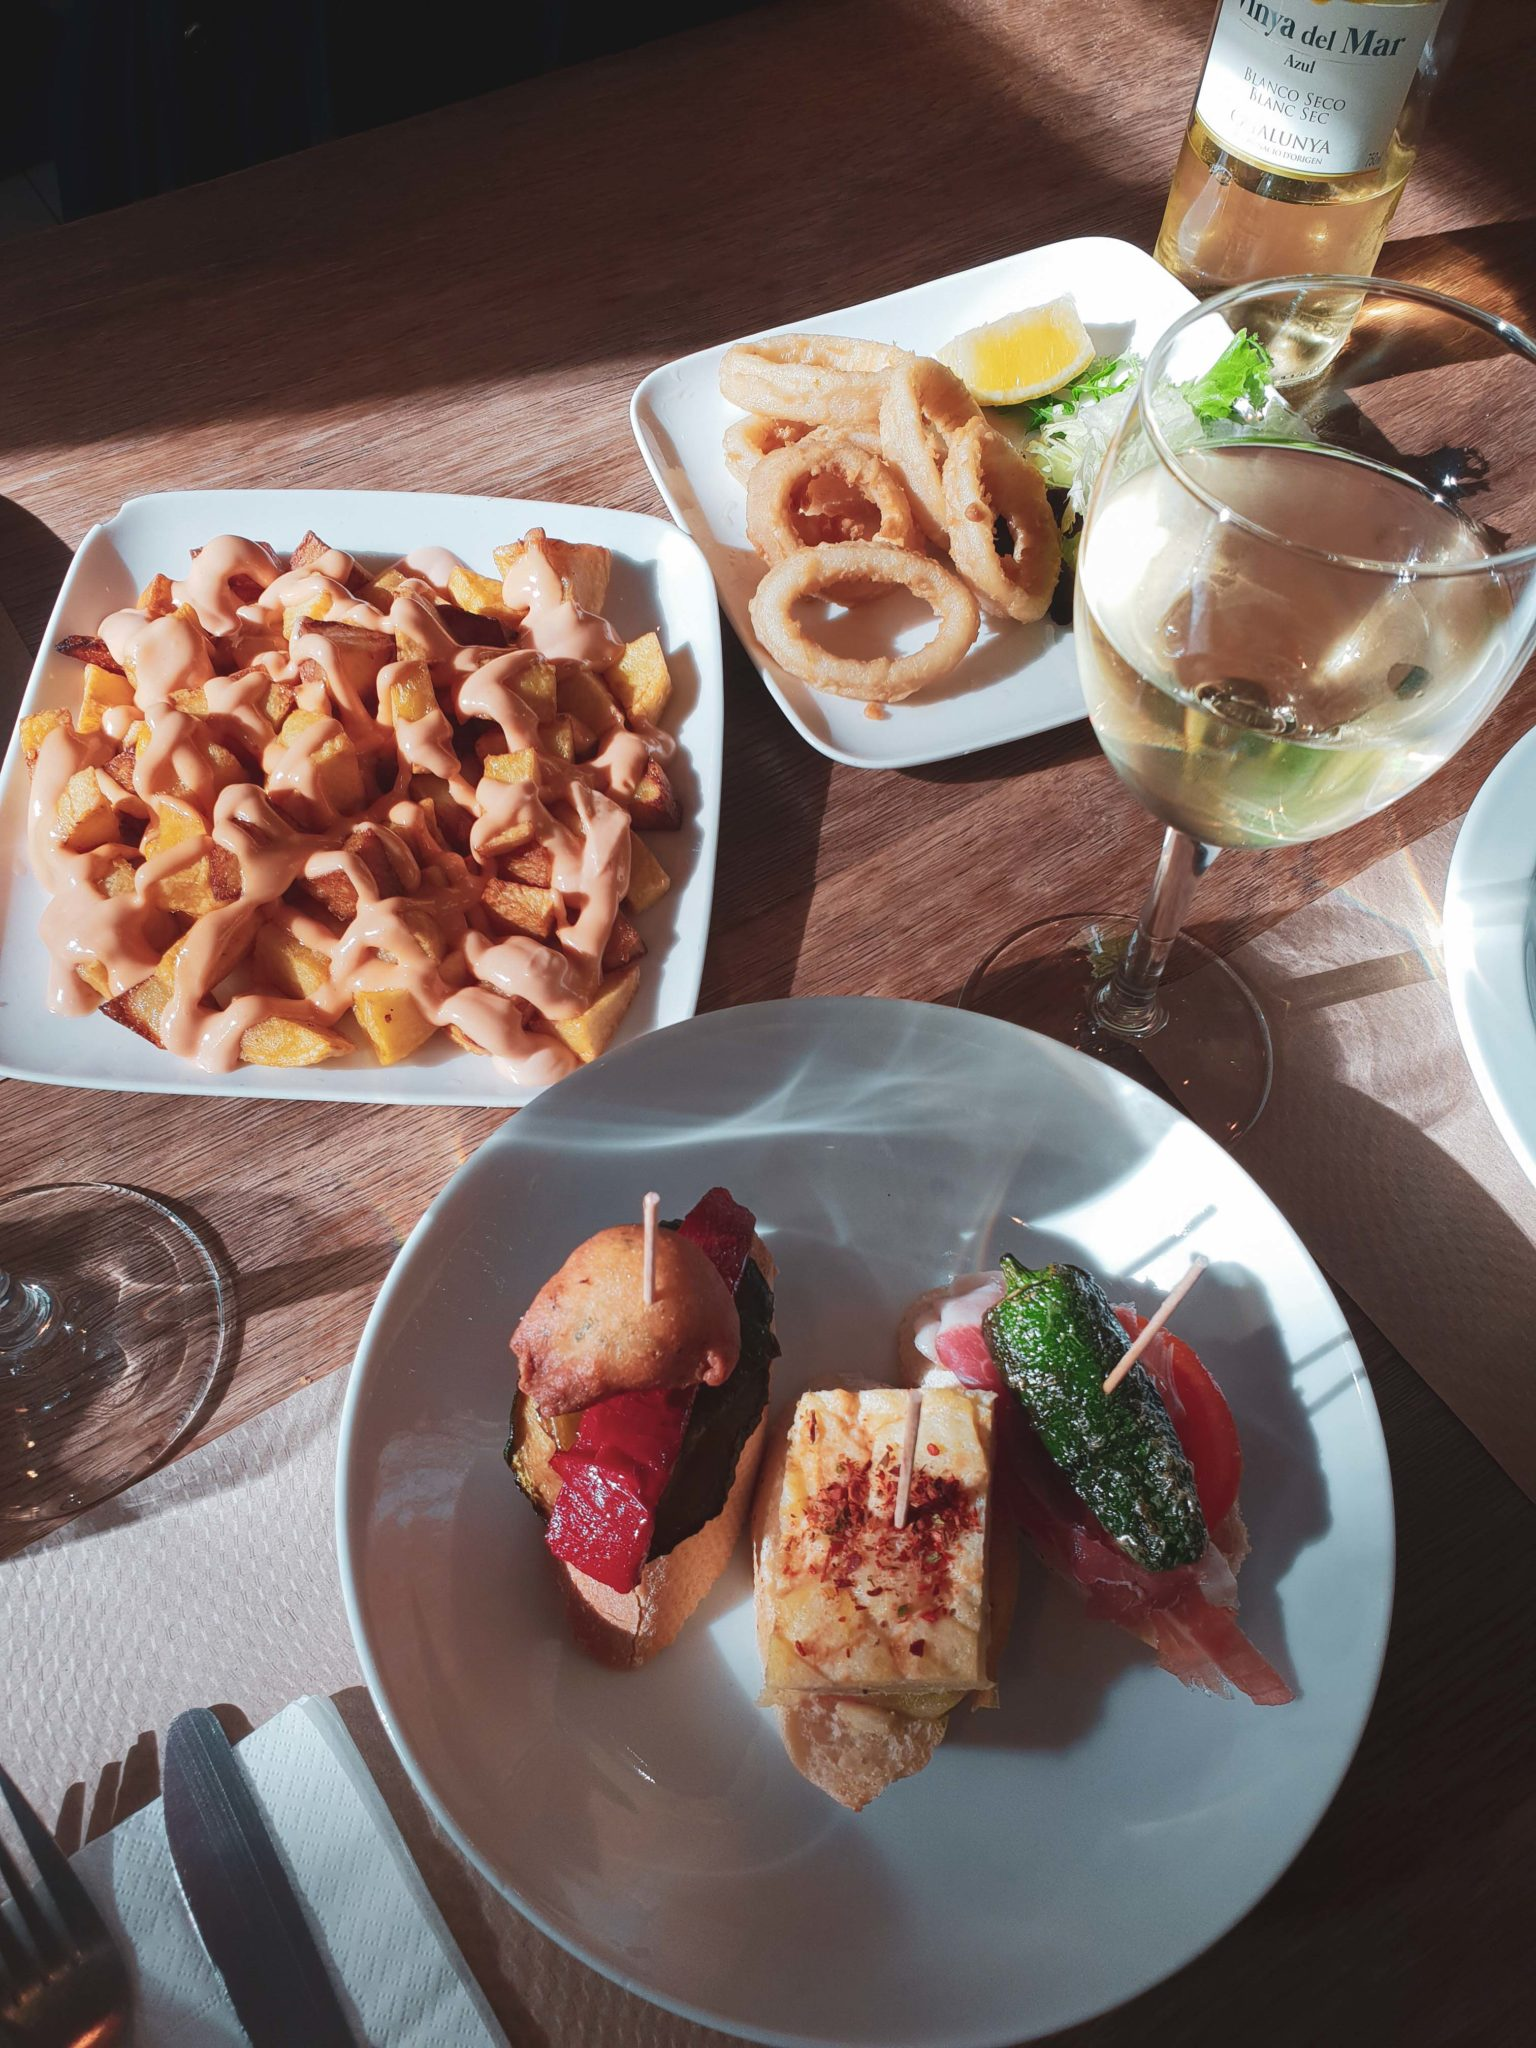 Barcelona travel guide by Michaella and Lina from Bulgarian lifestyle blog Quite a Looker / Tapas